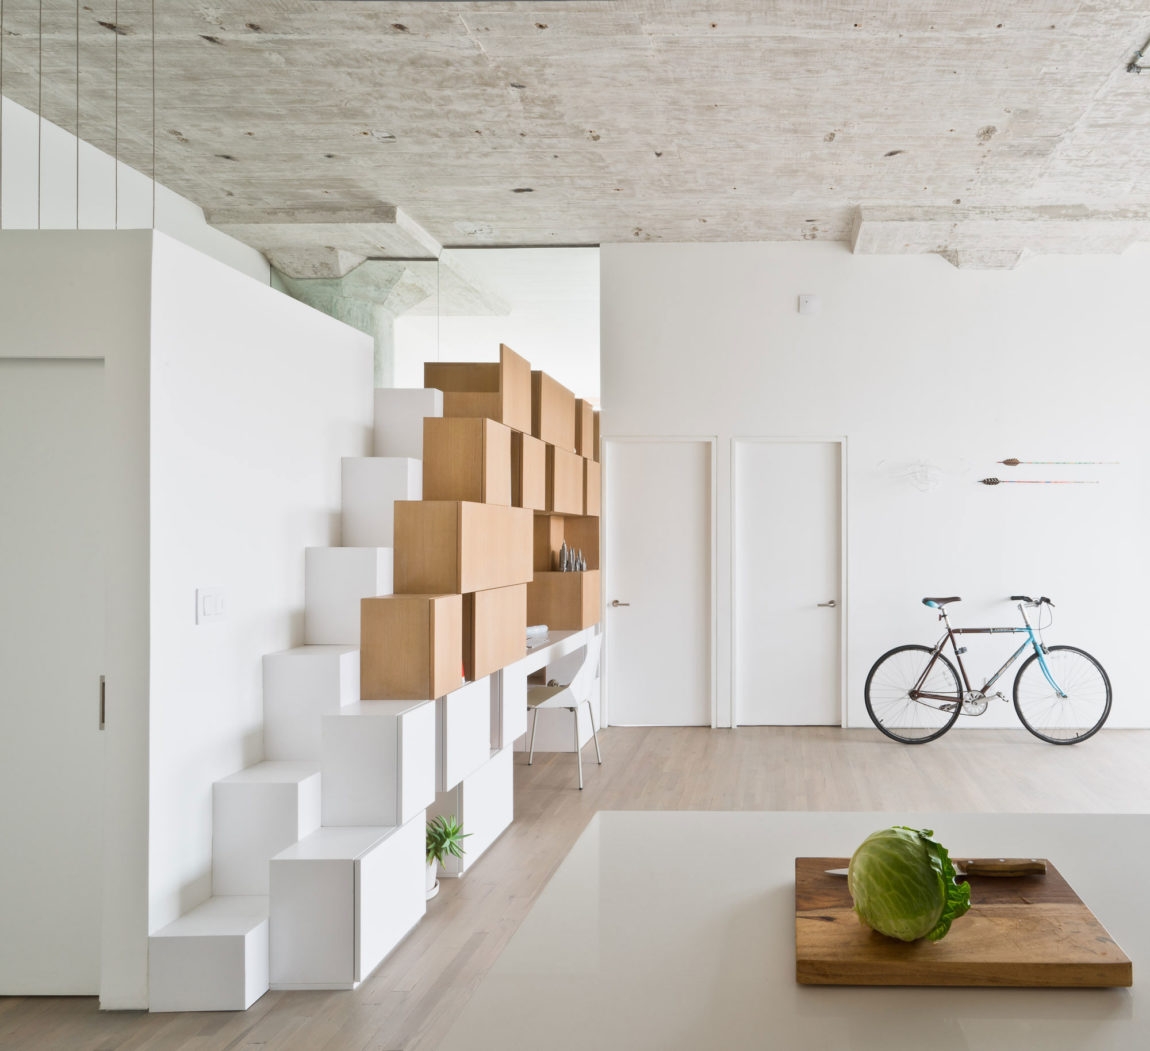 Doehler 2 by SABO project (13)